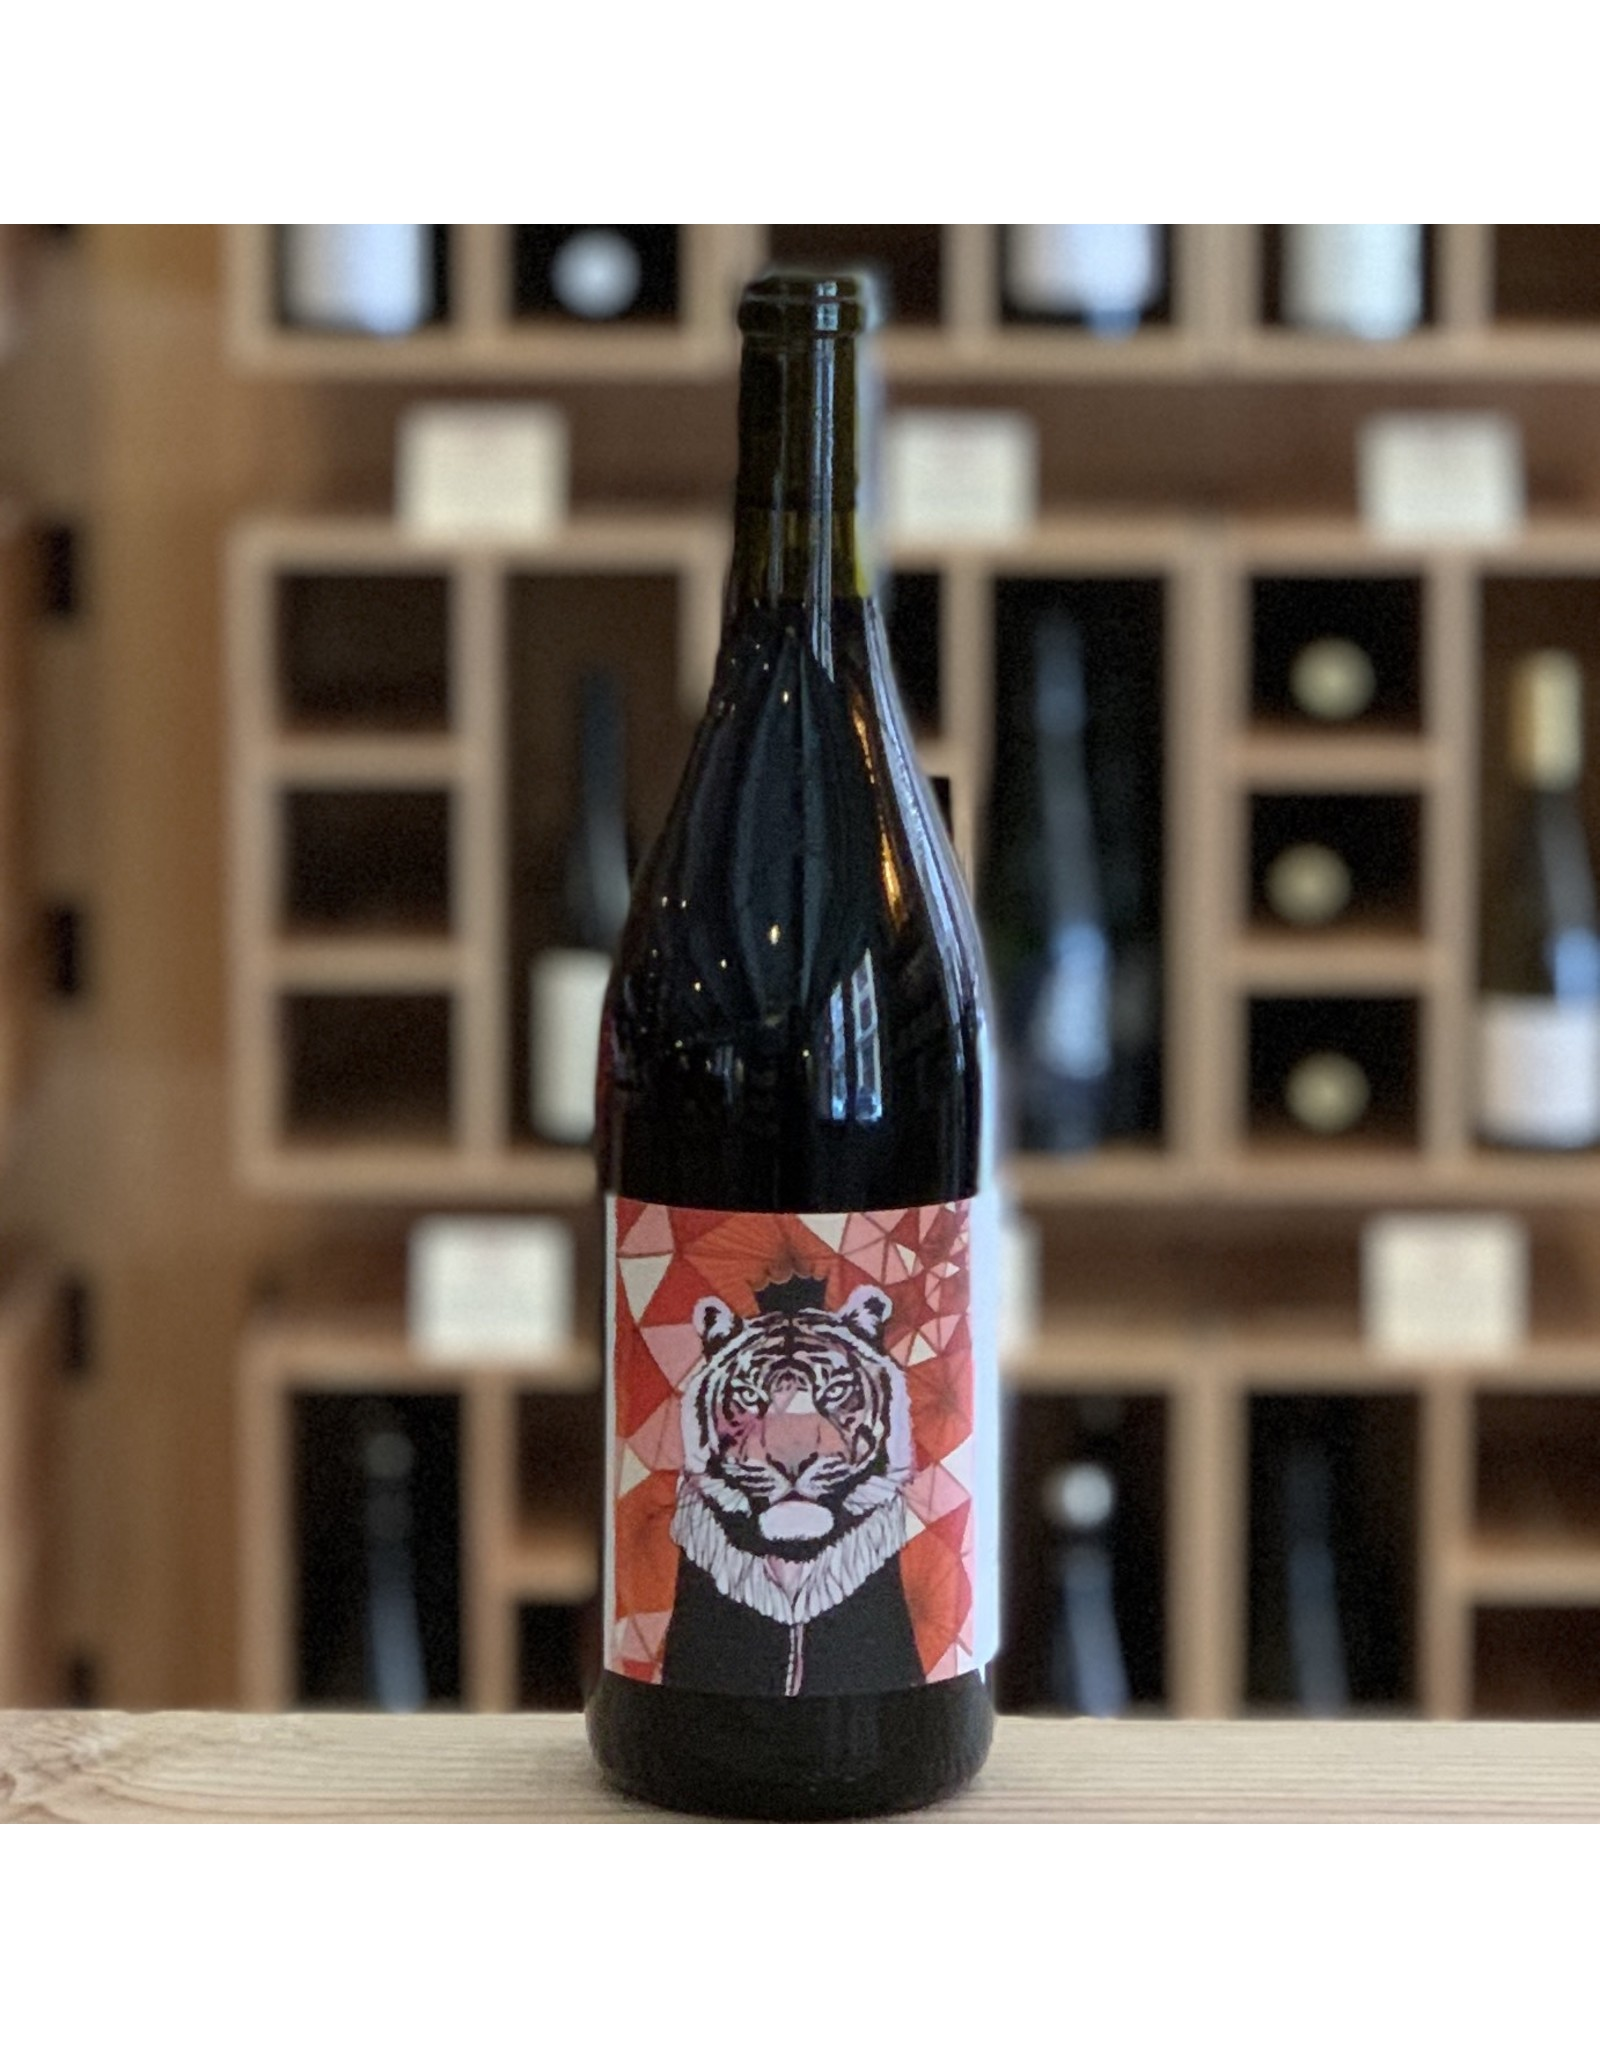 Russian River Valley Eric Kent Appellation Series Pinot Noir 2018 - Russian River Valley, CA